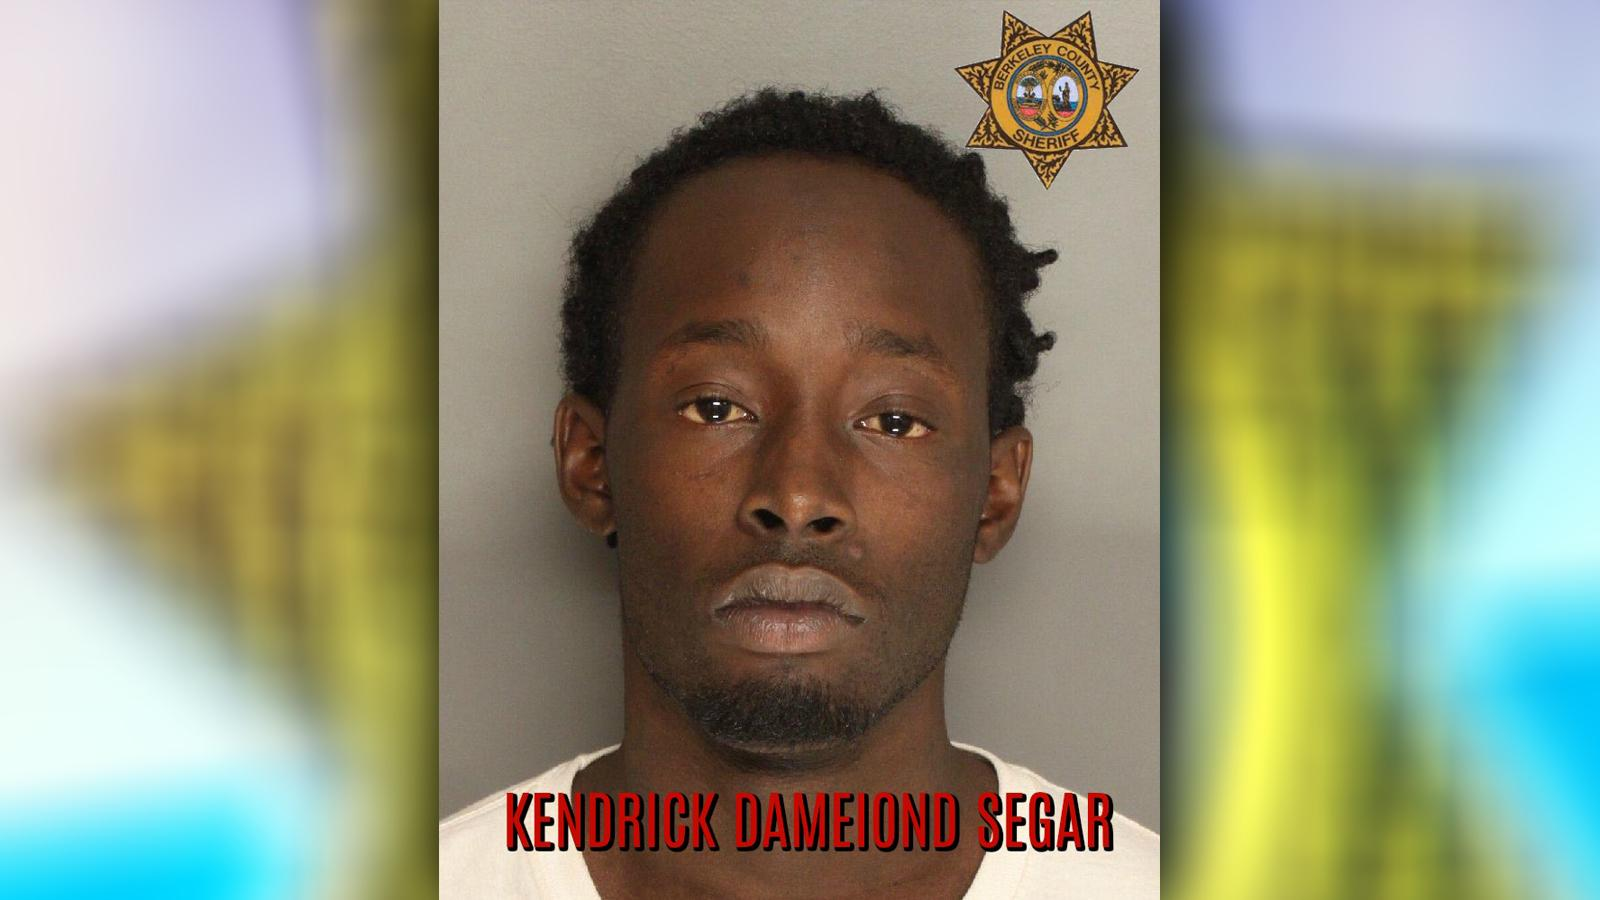 •	Kendrick Dameiond Segar Bench Warrant- Simple Possession of Marijuana Possession of Other Substance Schedule I, II, III